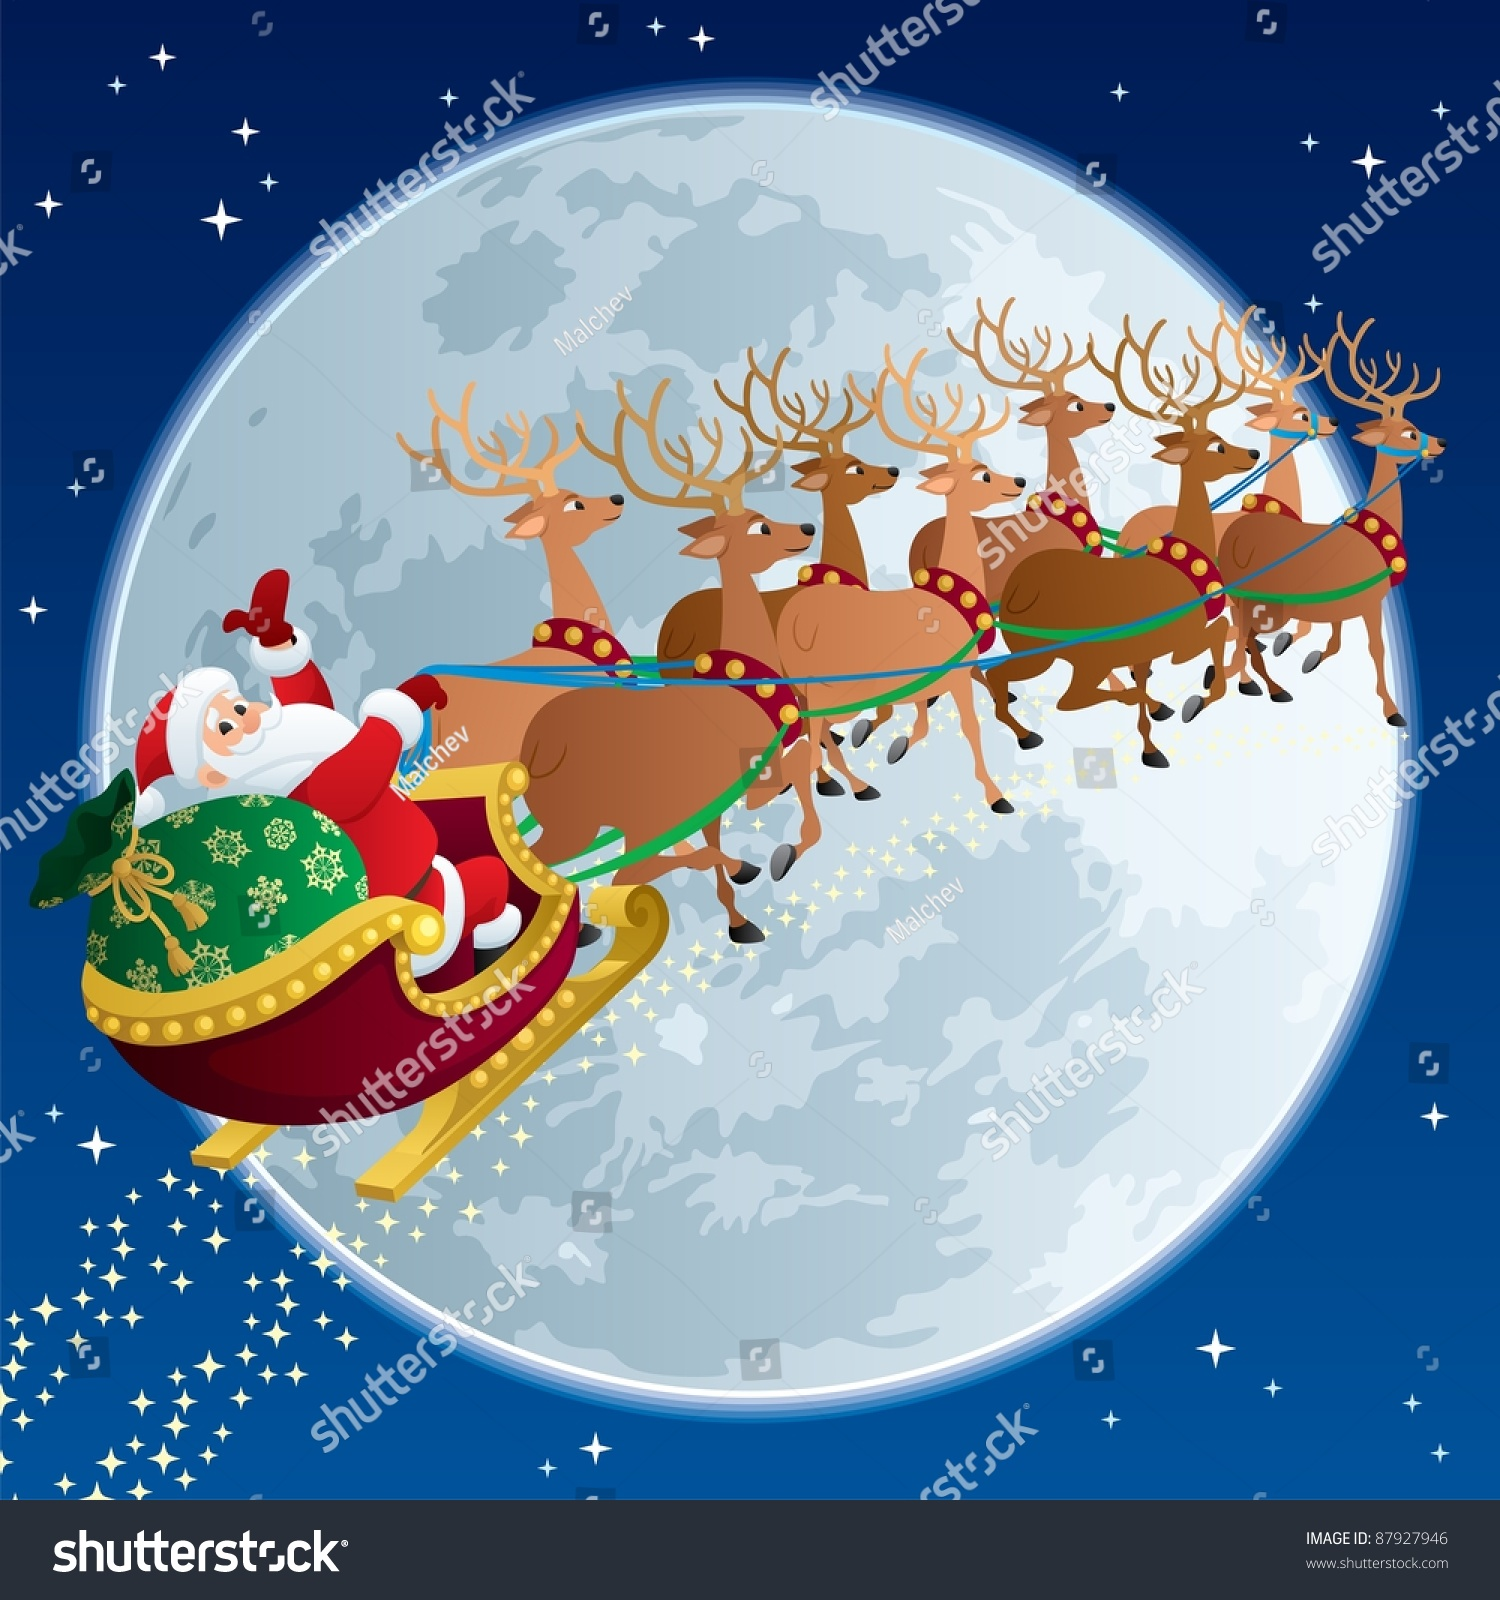 Santa Claus Flying In His Sleigh. Stock Vector ...